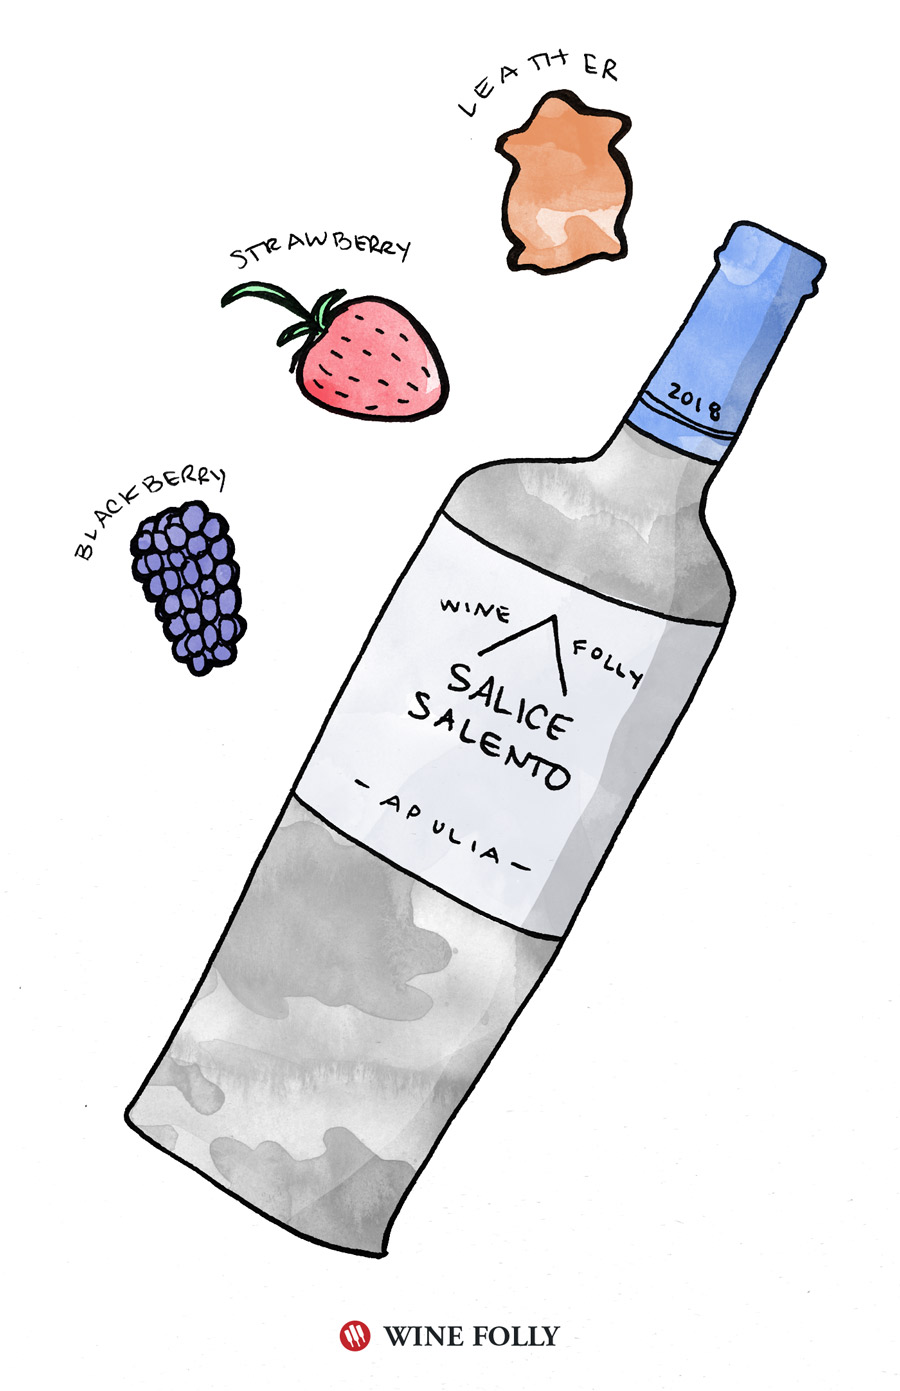 Salice Salento Tasting Notes Illustration by Wine Folly